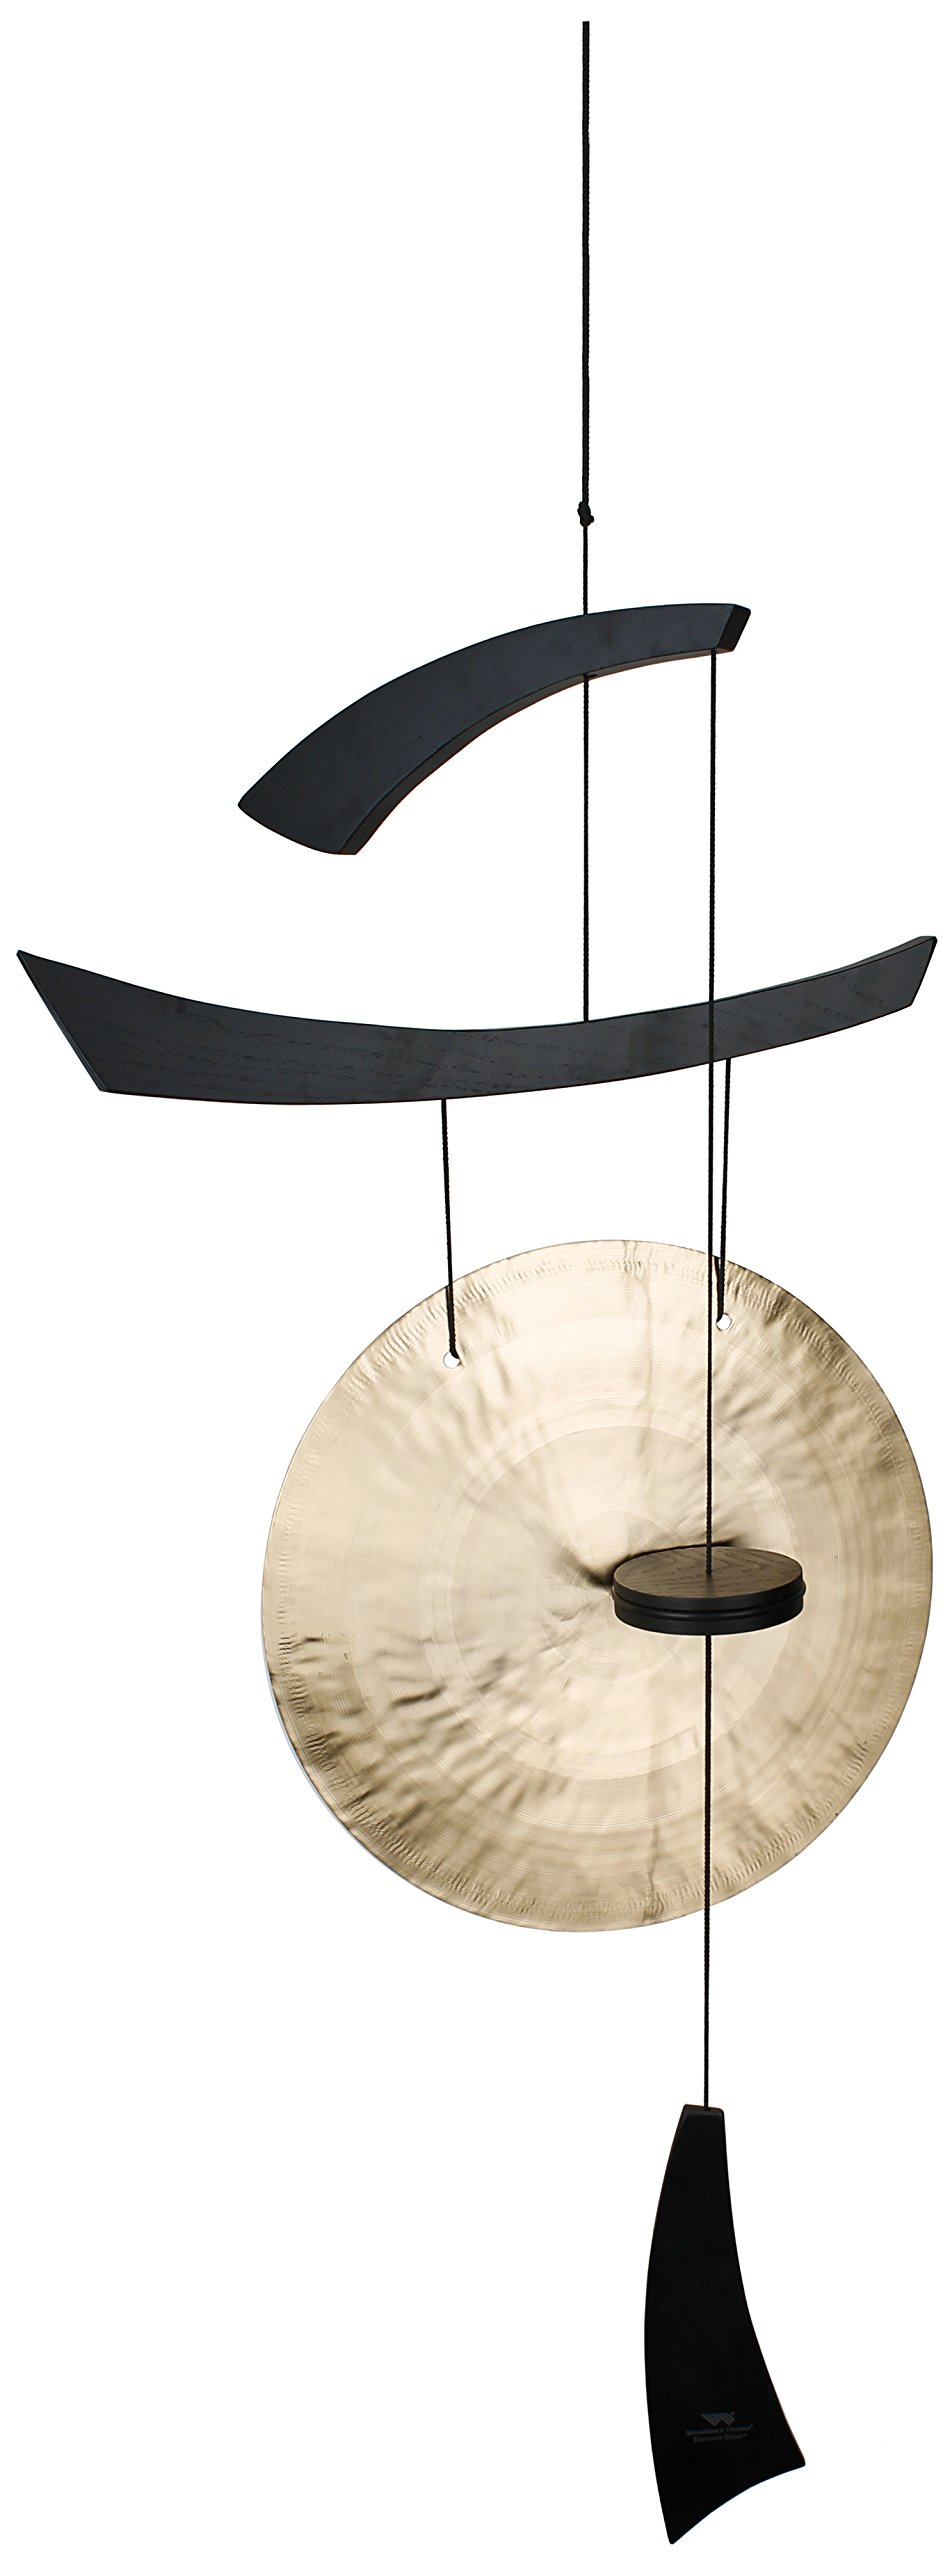 Woodstock Large Emperor Gong, Black by Woodstock Wind Chimes